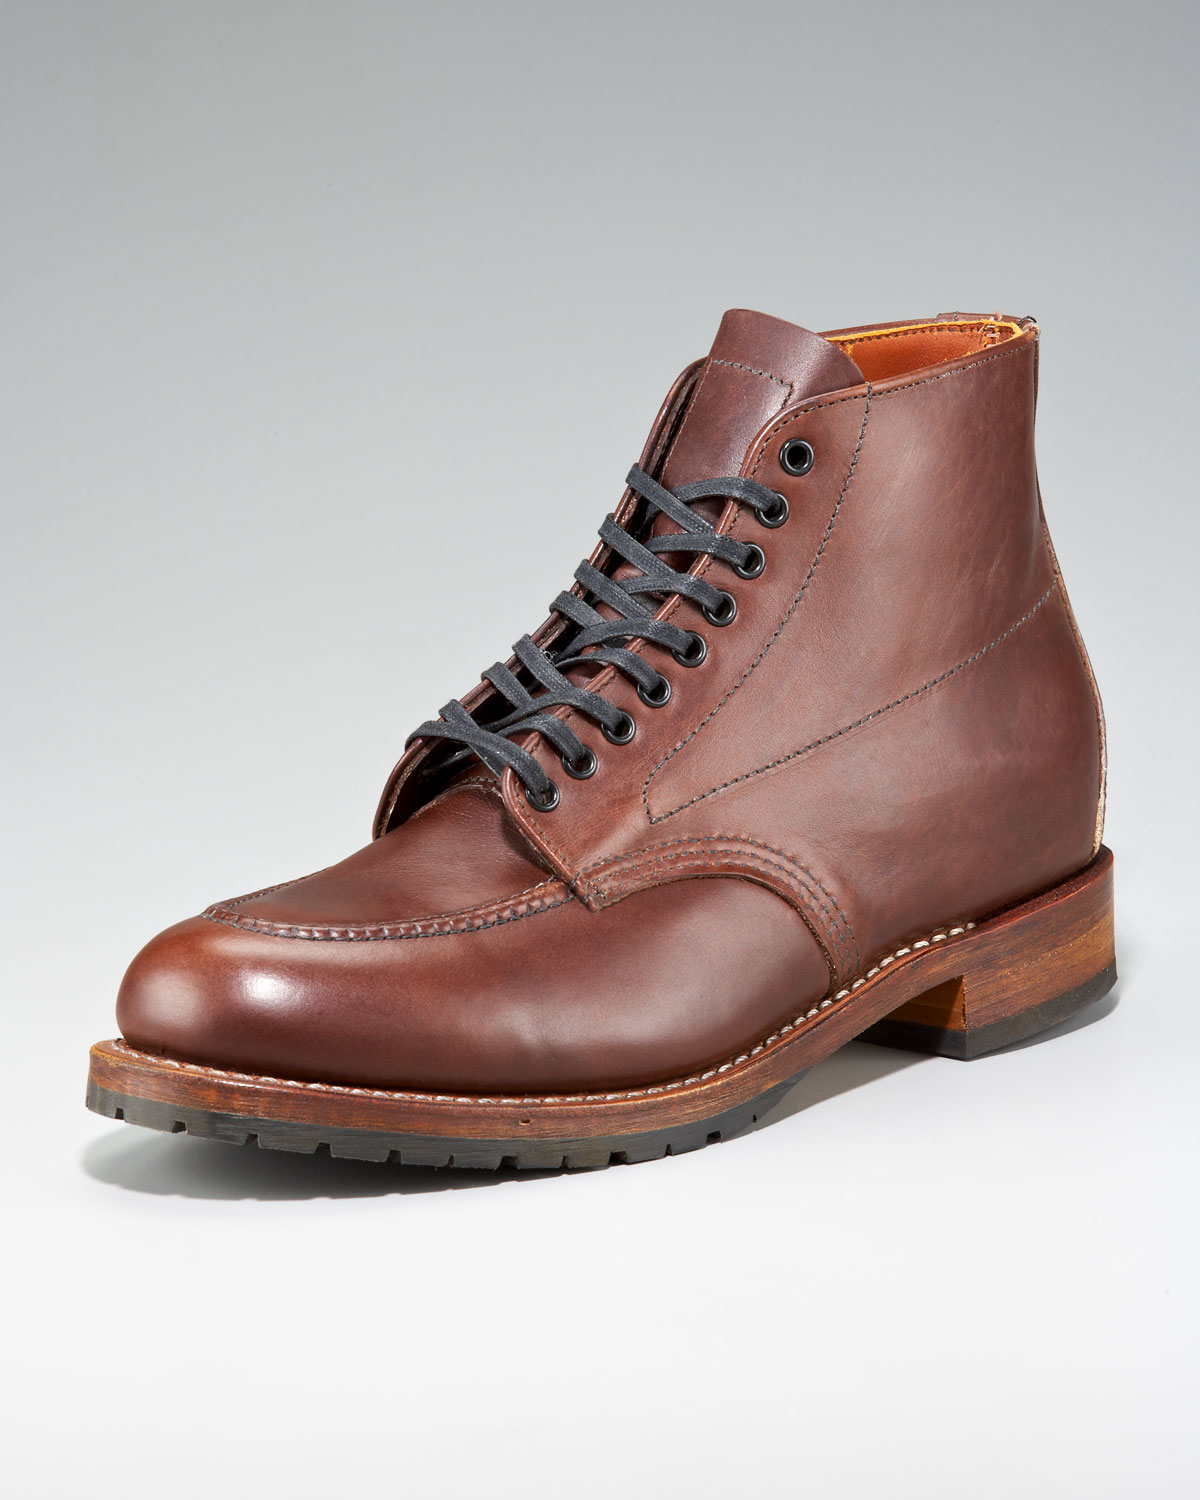 Red Wing Work Boots Sale - Cr Boot